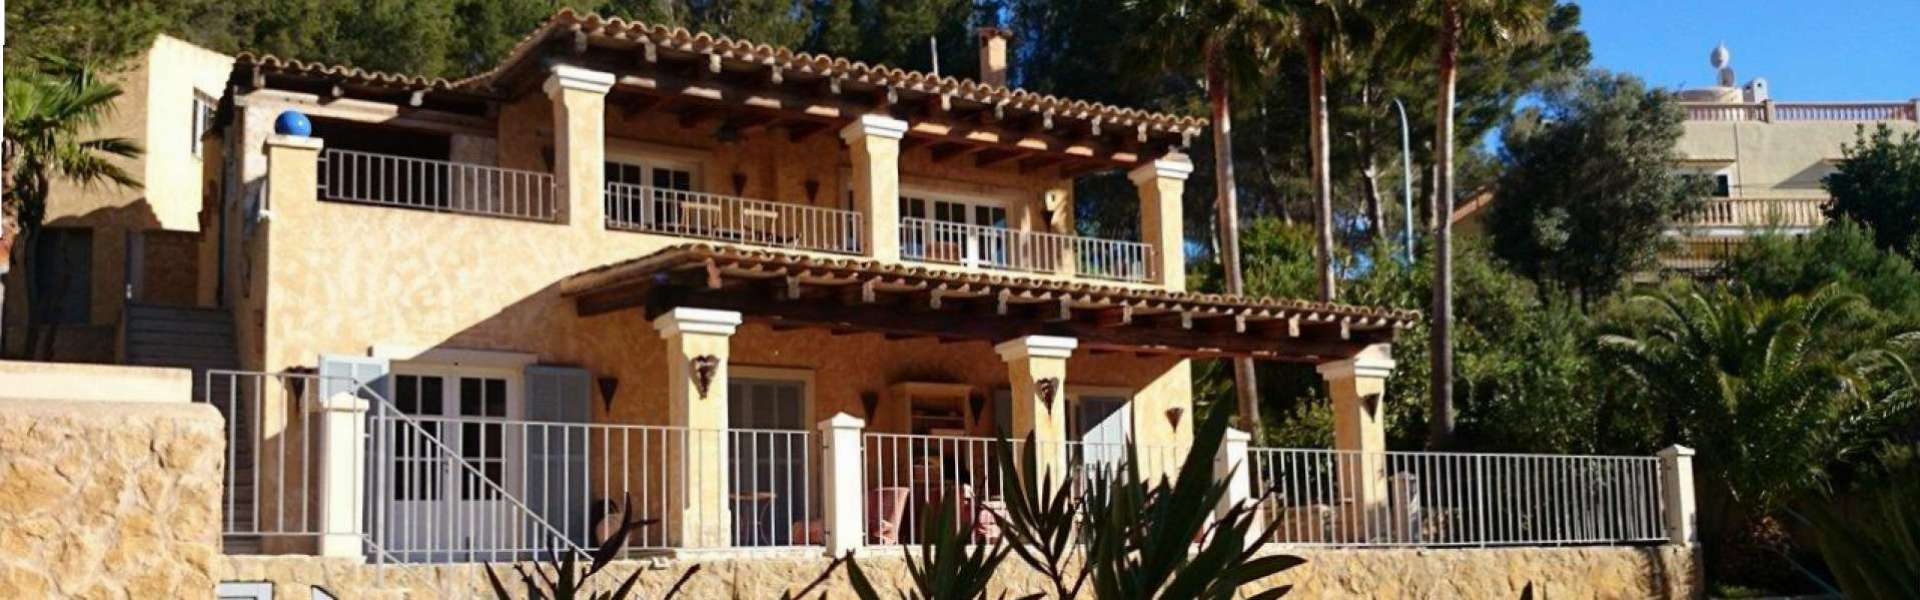 Costa de la Calma - Villa with sea view and beach access